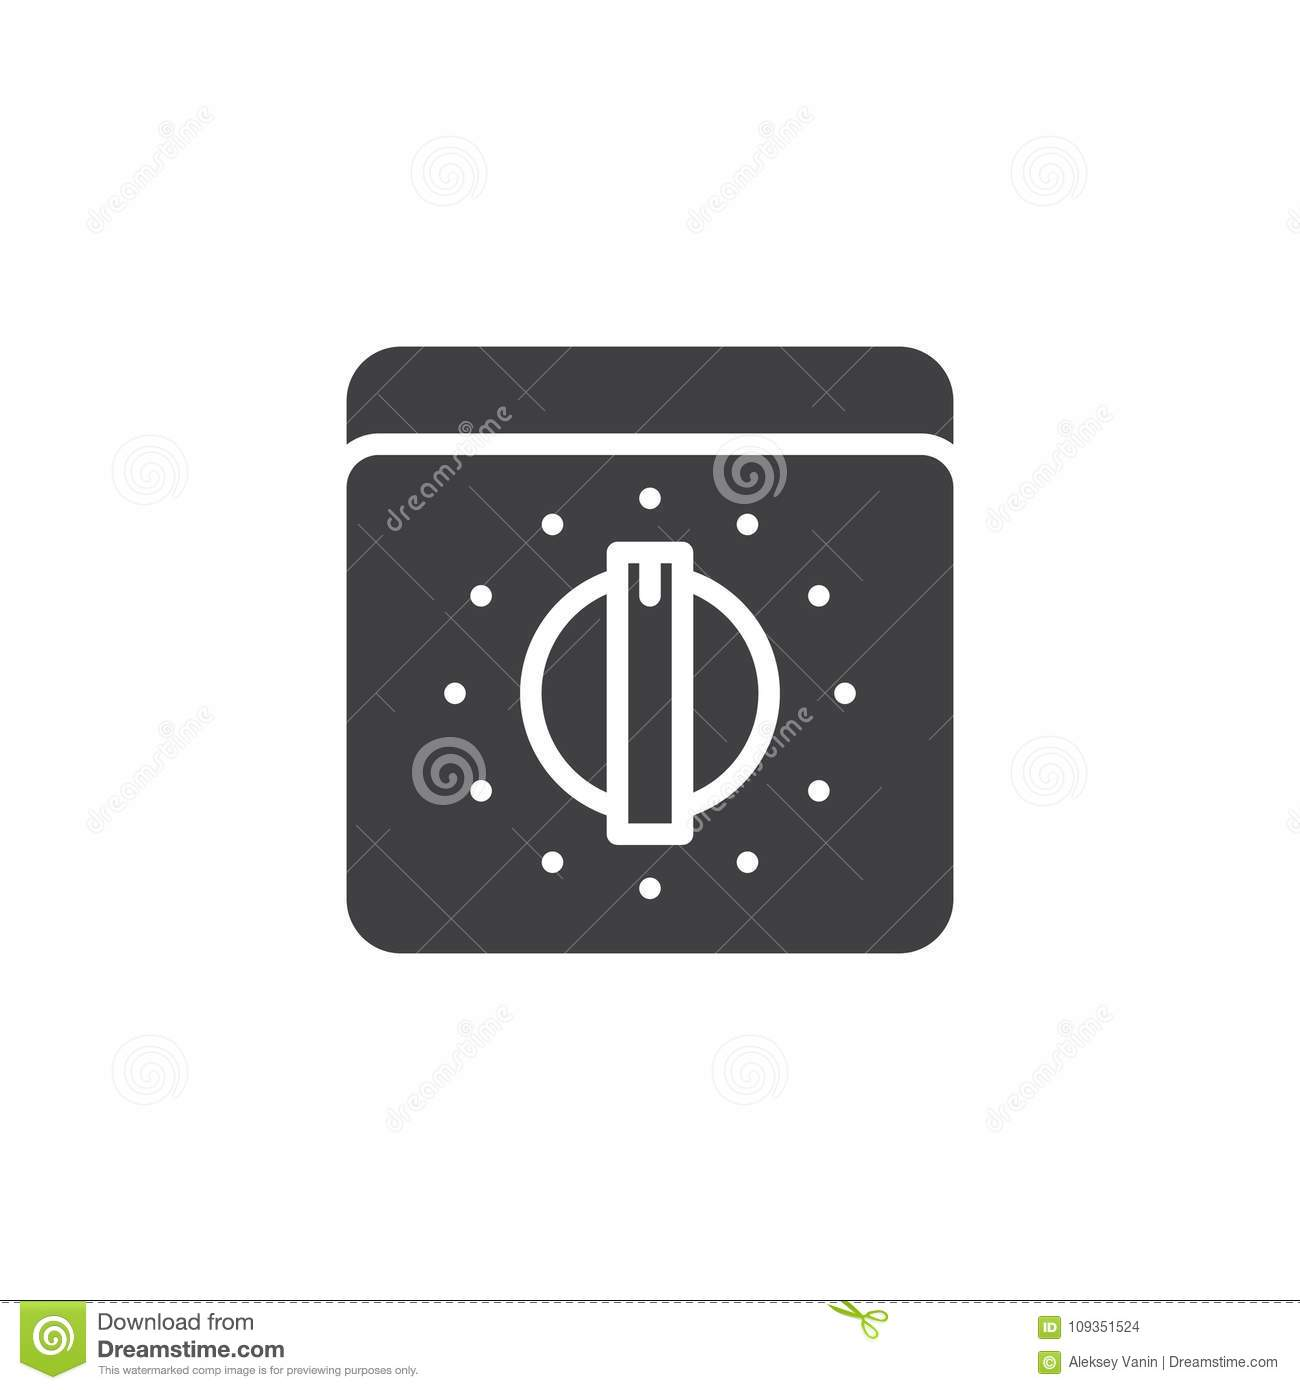 Kitchen Oven Knob With Timer Icon Vector Stock Vector Illustration